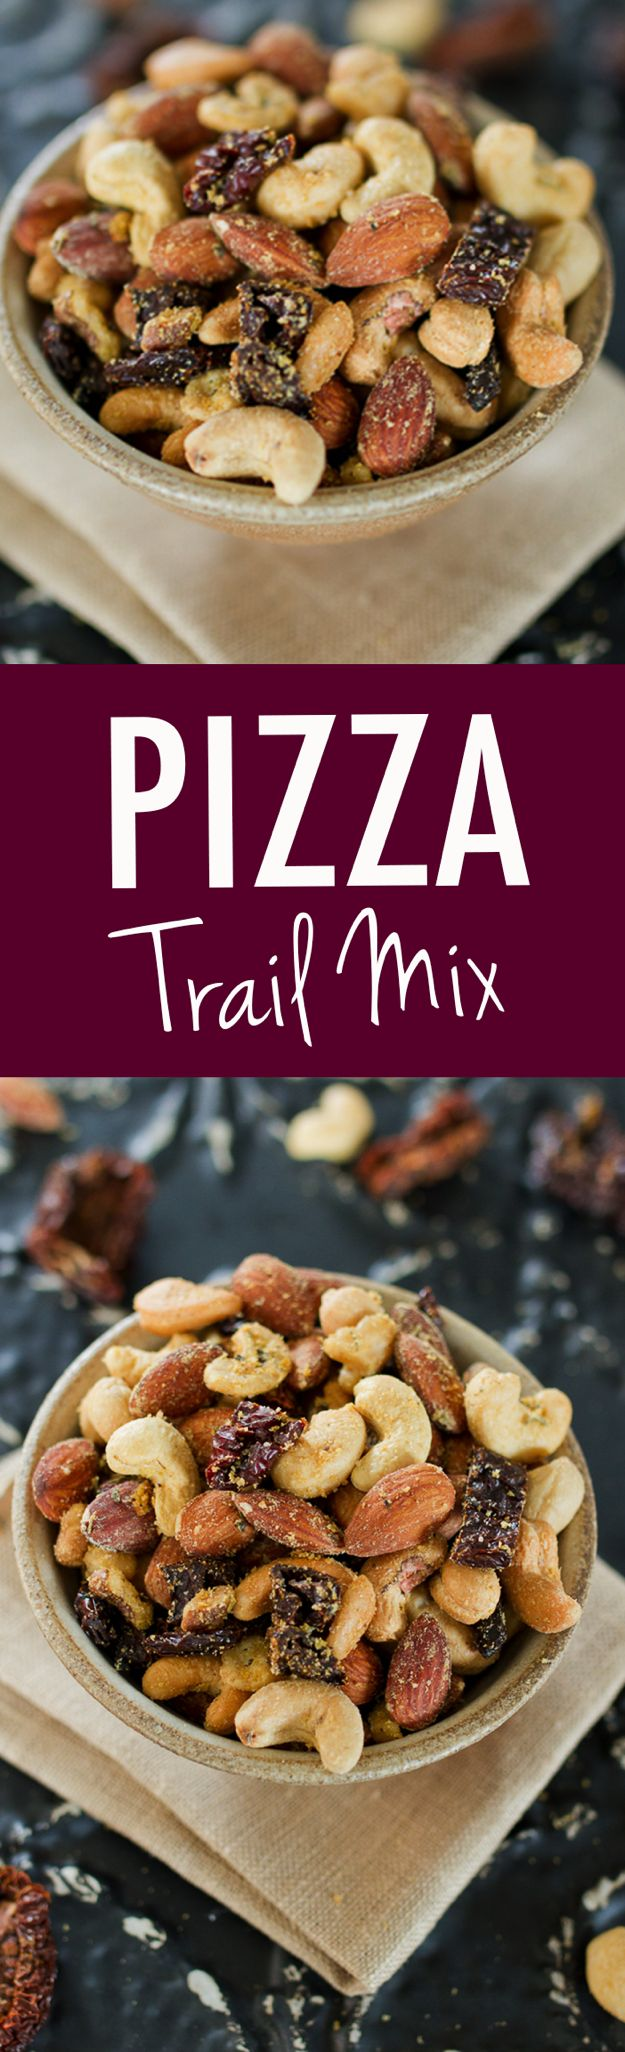 PIZZA TRAIL MIX -- A savory, cheesy mix of roasted nuts with sun-dried tomatoes and Italian seasonings. #vegan #paleo #glutenfree